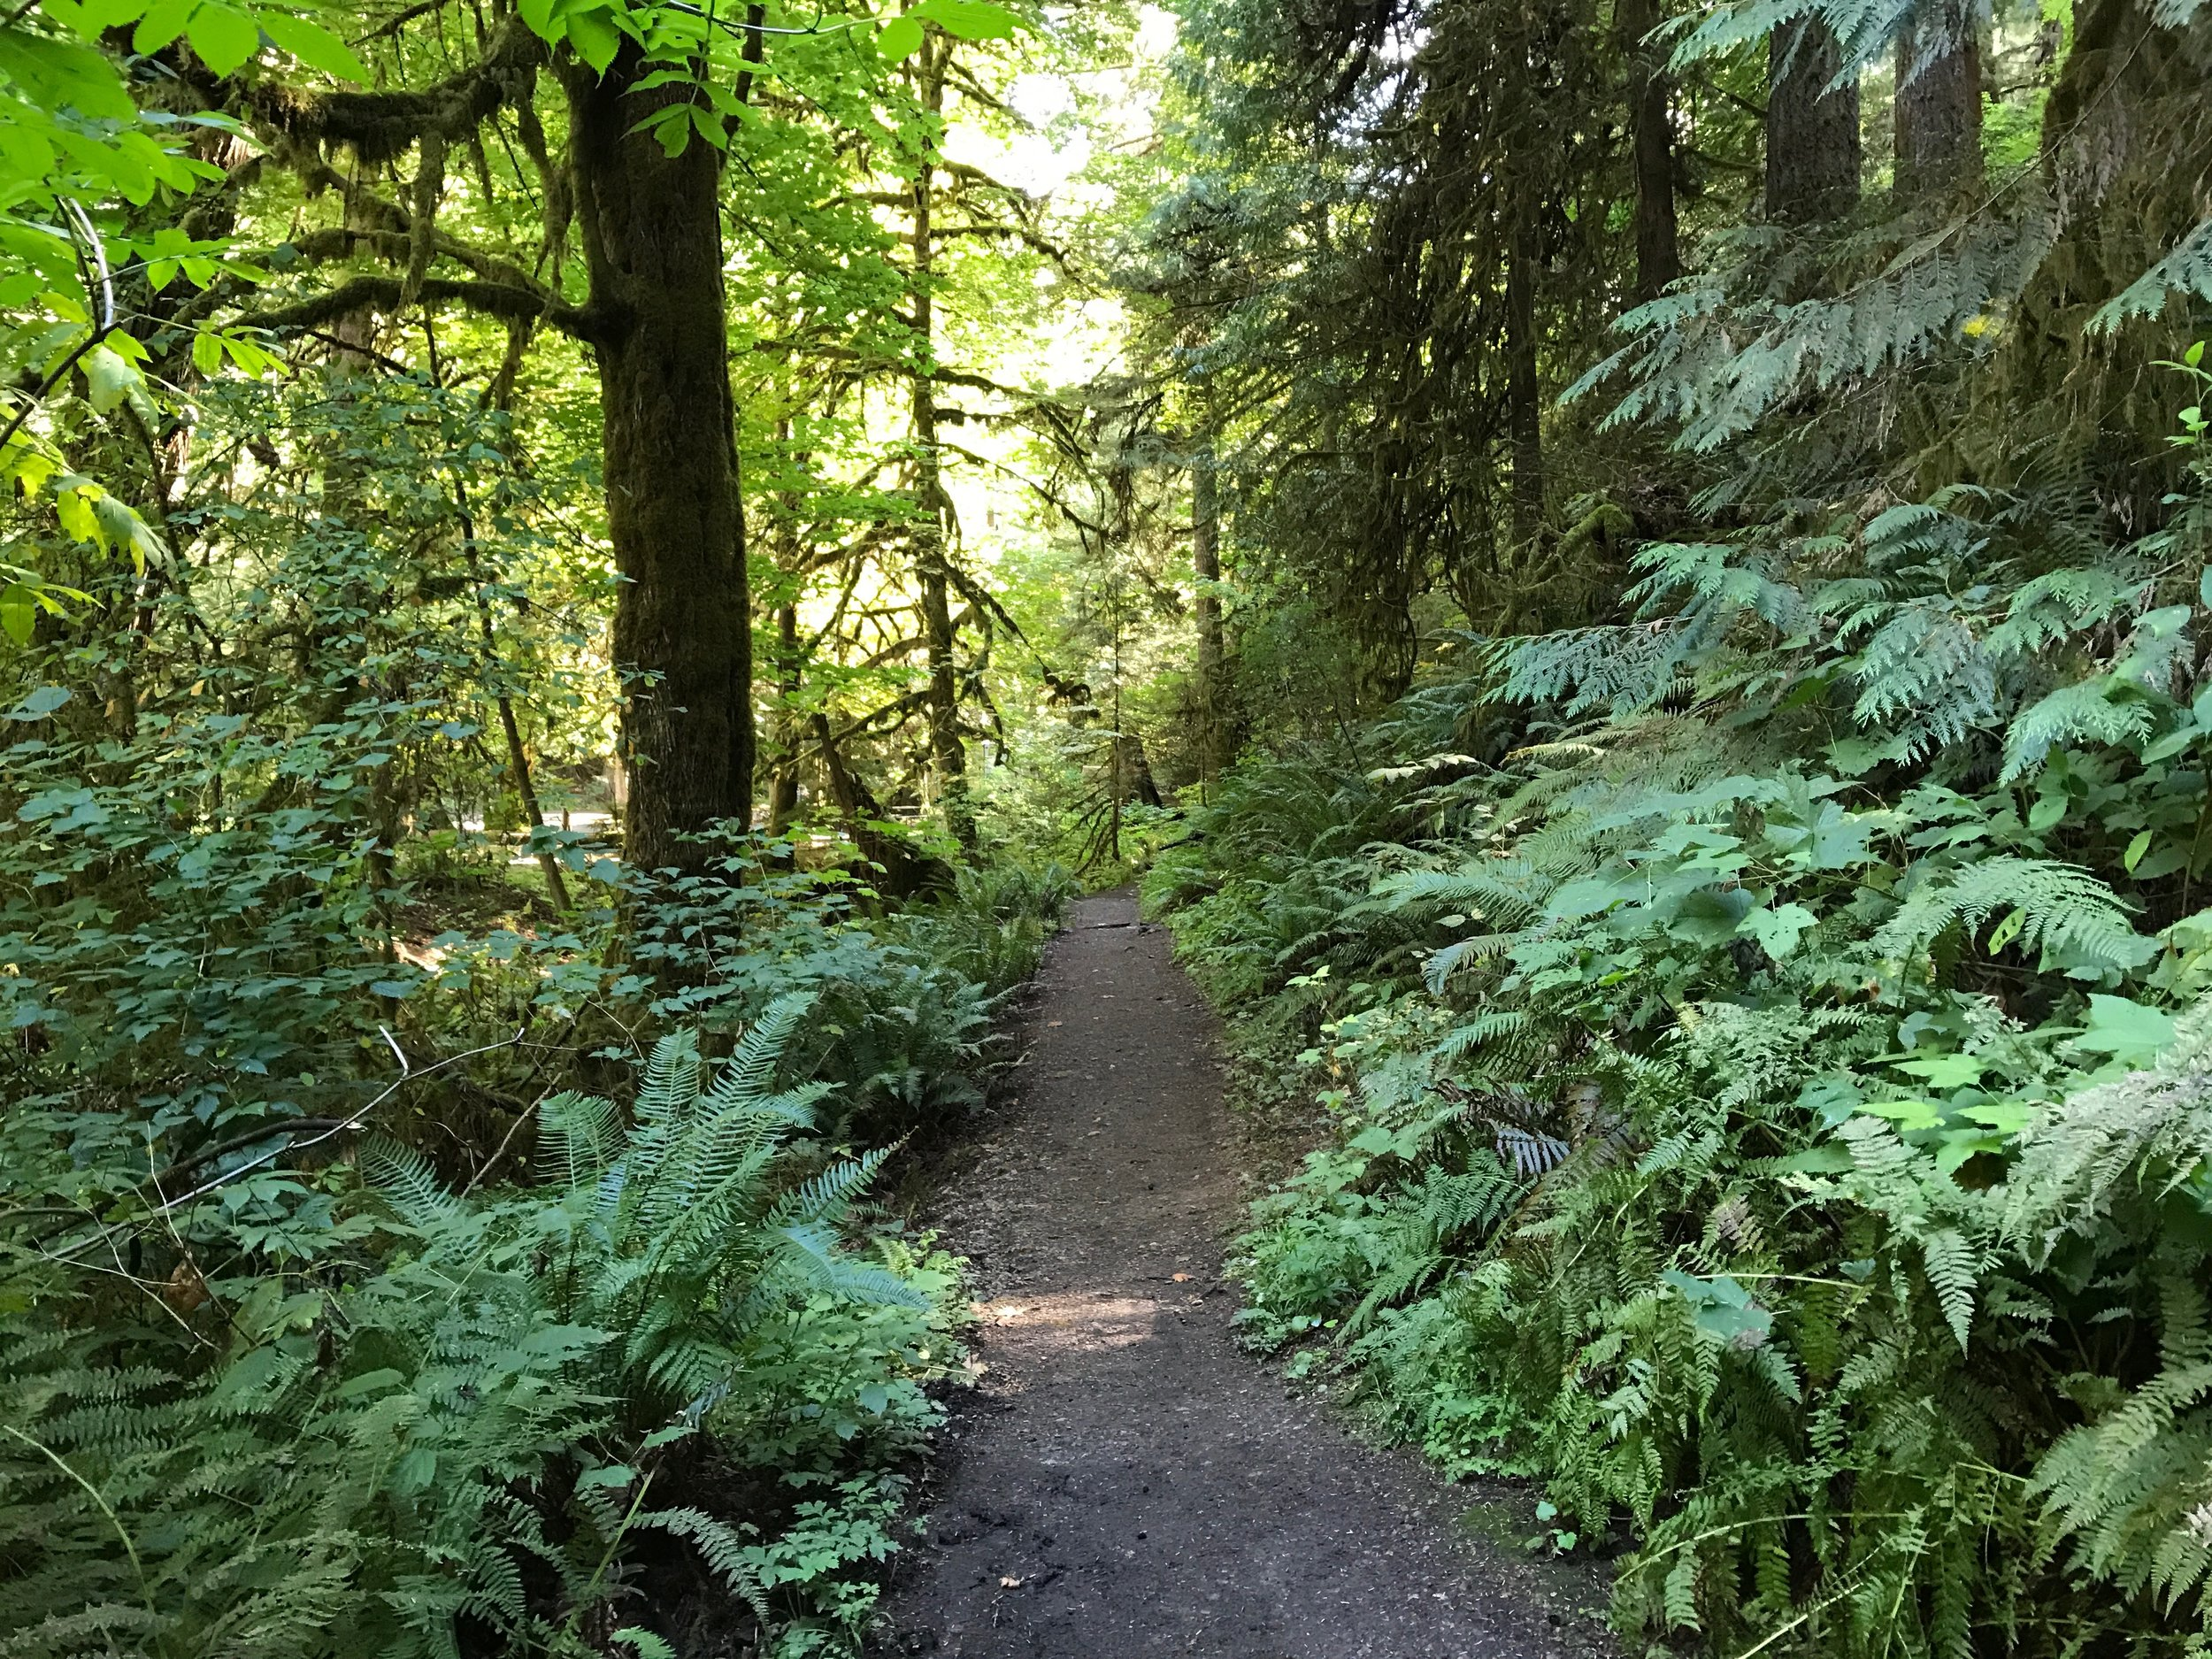 A dirt trail surrounded by green ferns and evergreen trees.